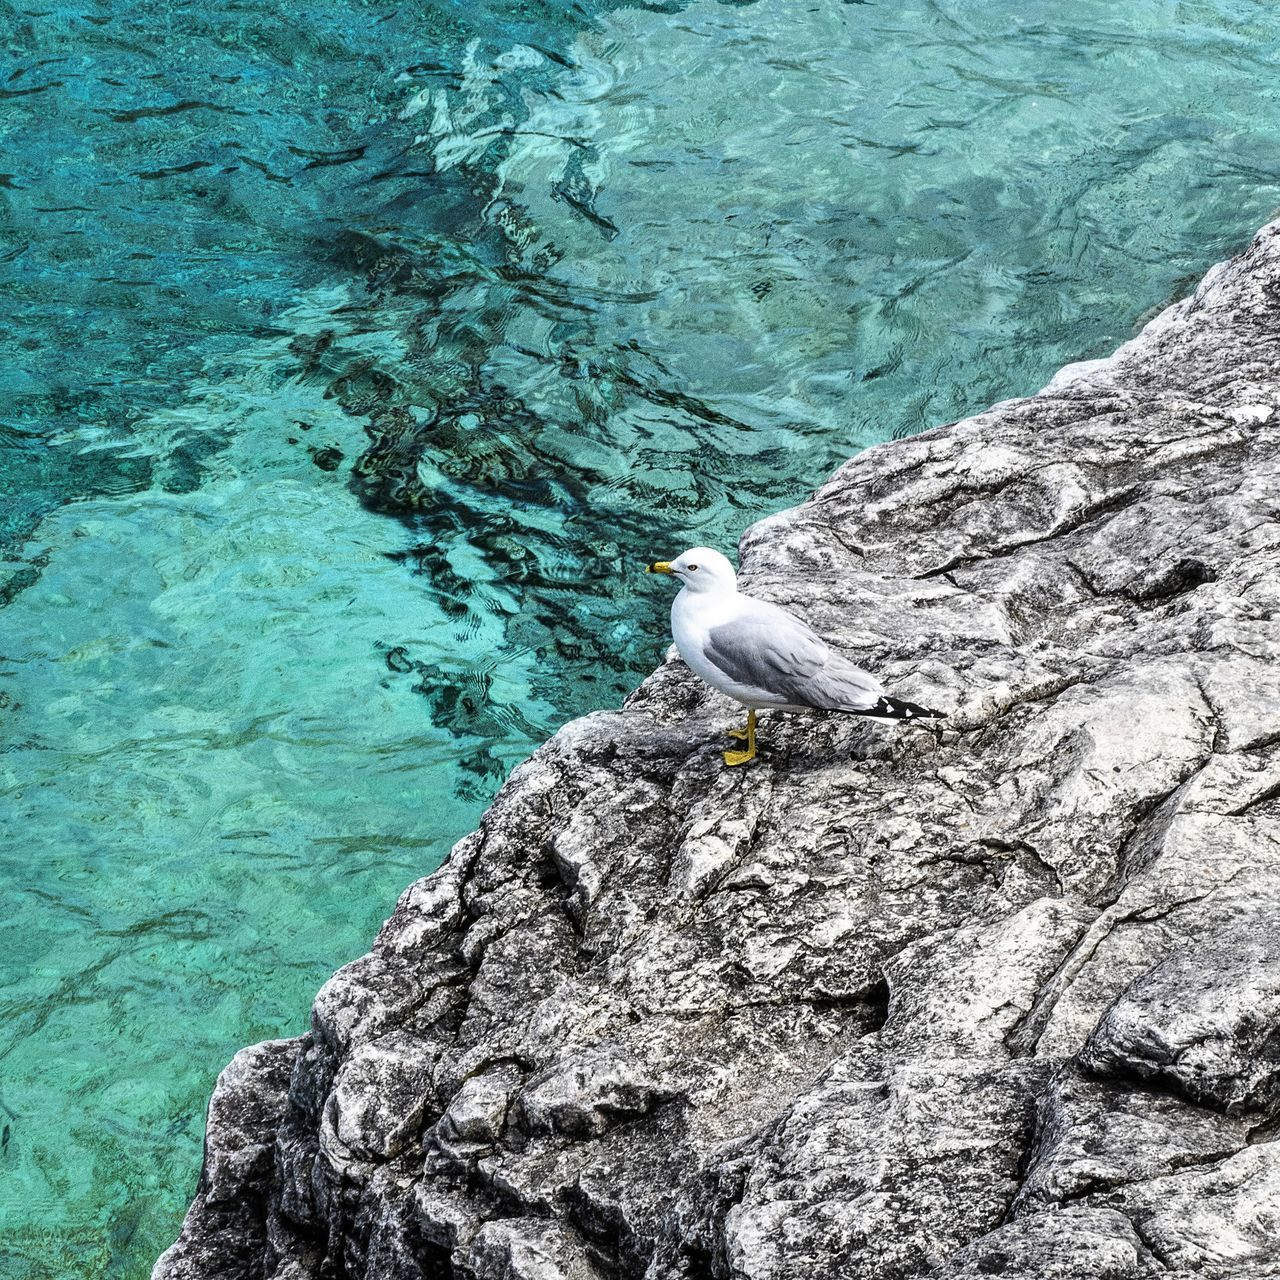 Water Nature Beach Sea Beauty In Nature Close-up Grotto Shoreline Clear Water_collection Coastal Bird Seagull Clean Pure Fresh Blue Tranquility The Great Outdoors - 2017 EyeEm Awards